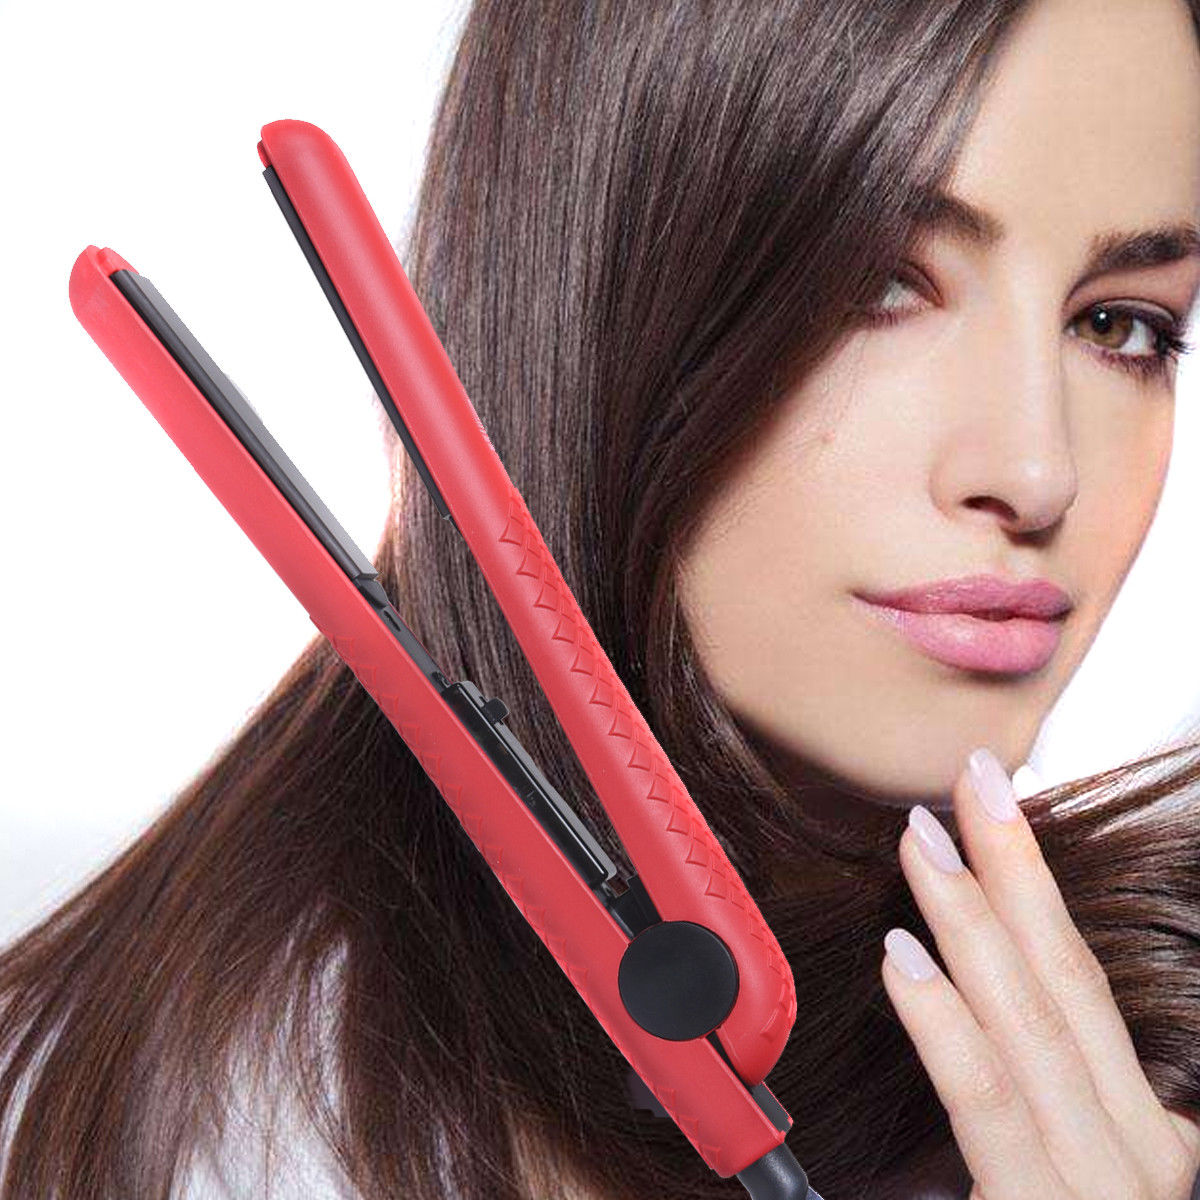 Gymax Ceramic Hair Straightener Straightens & Curly Adjustable Temp For All Hair Types